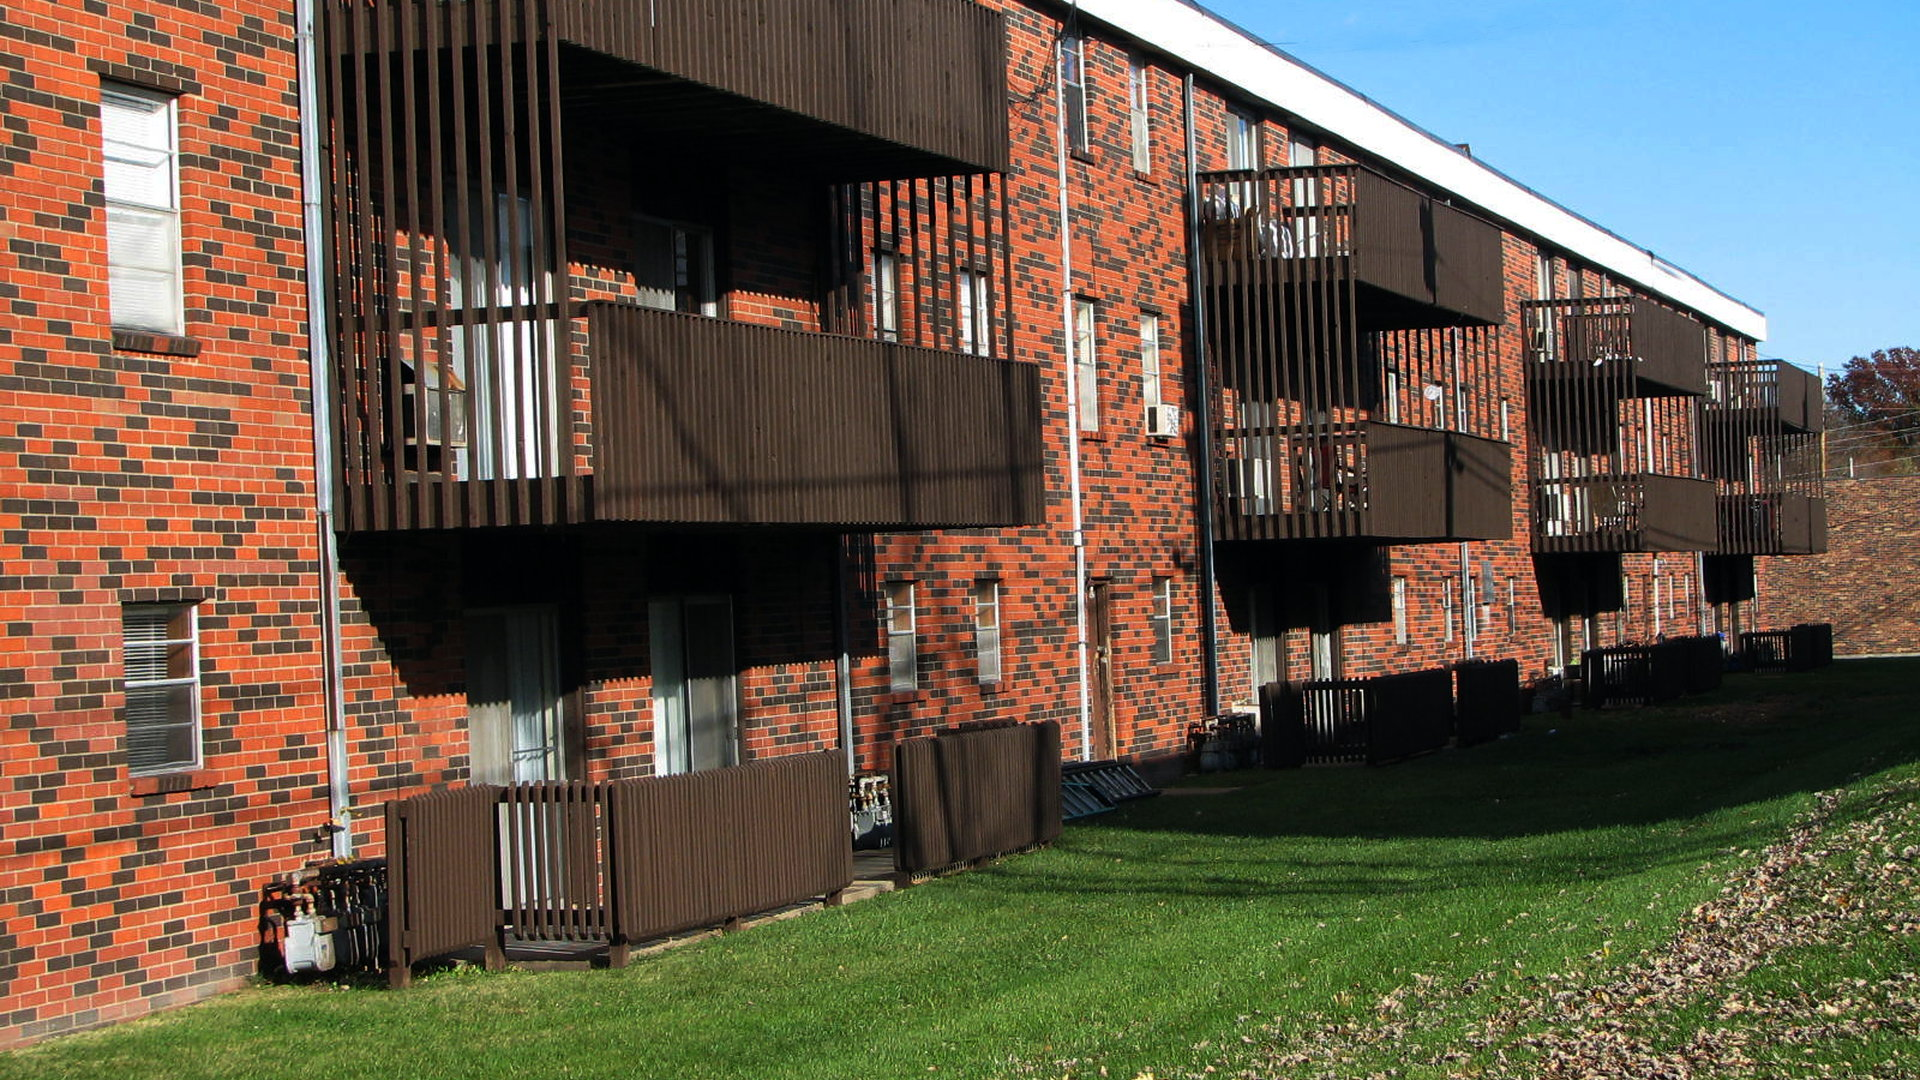 Tiger village apartments columbia mo reviews latest bestapartment 2018 for 1 bedroom apartments in columbia mo